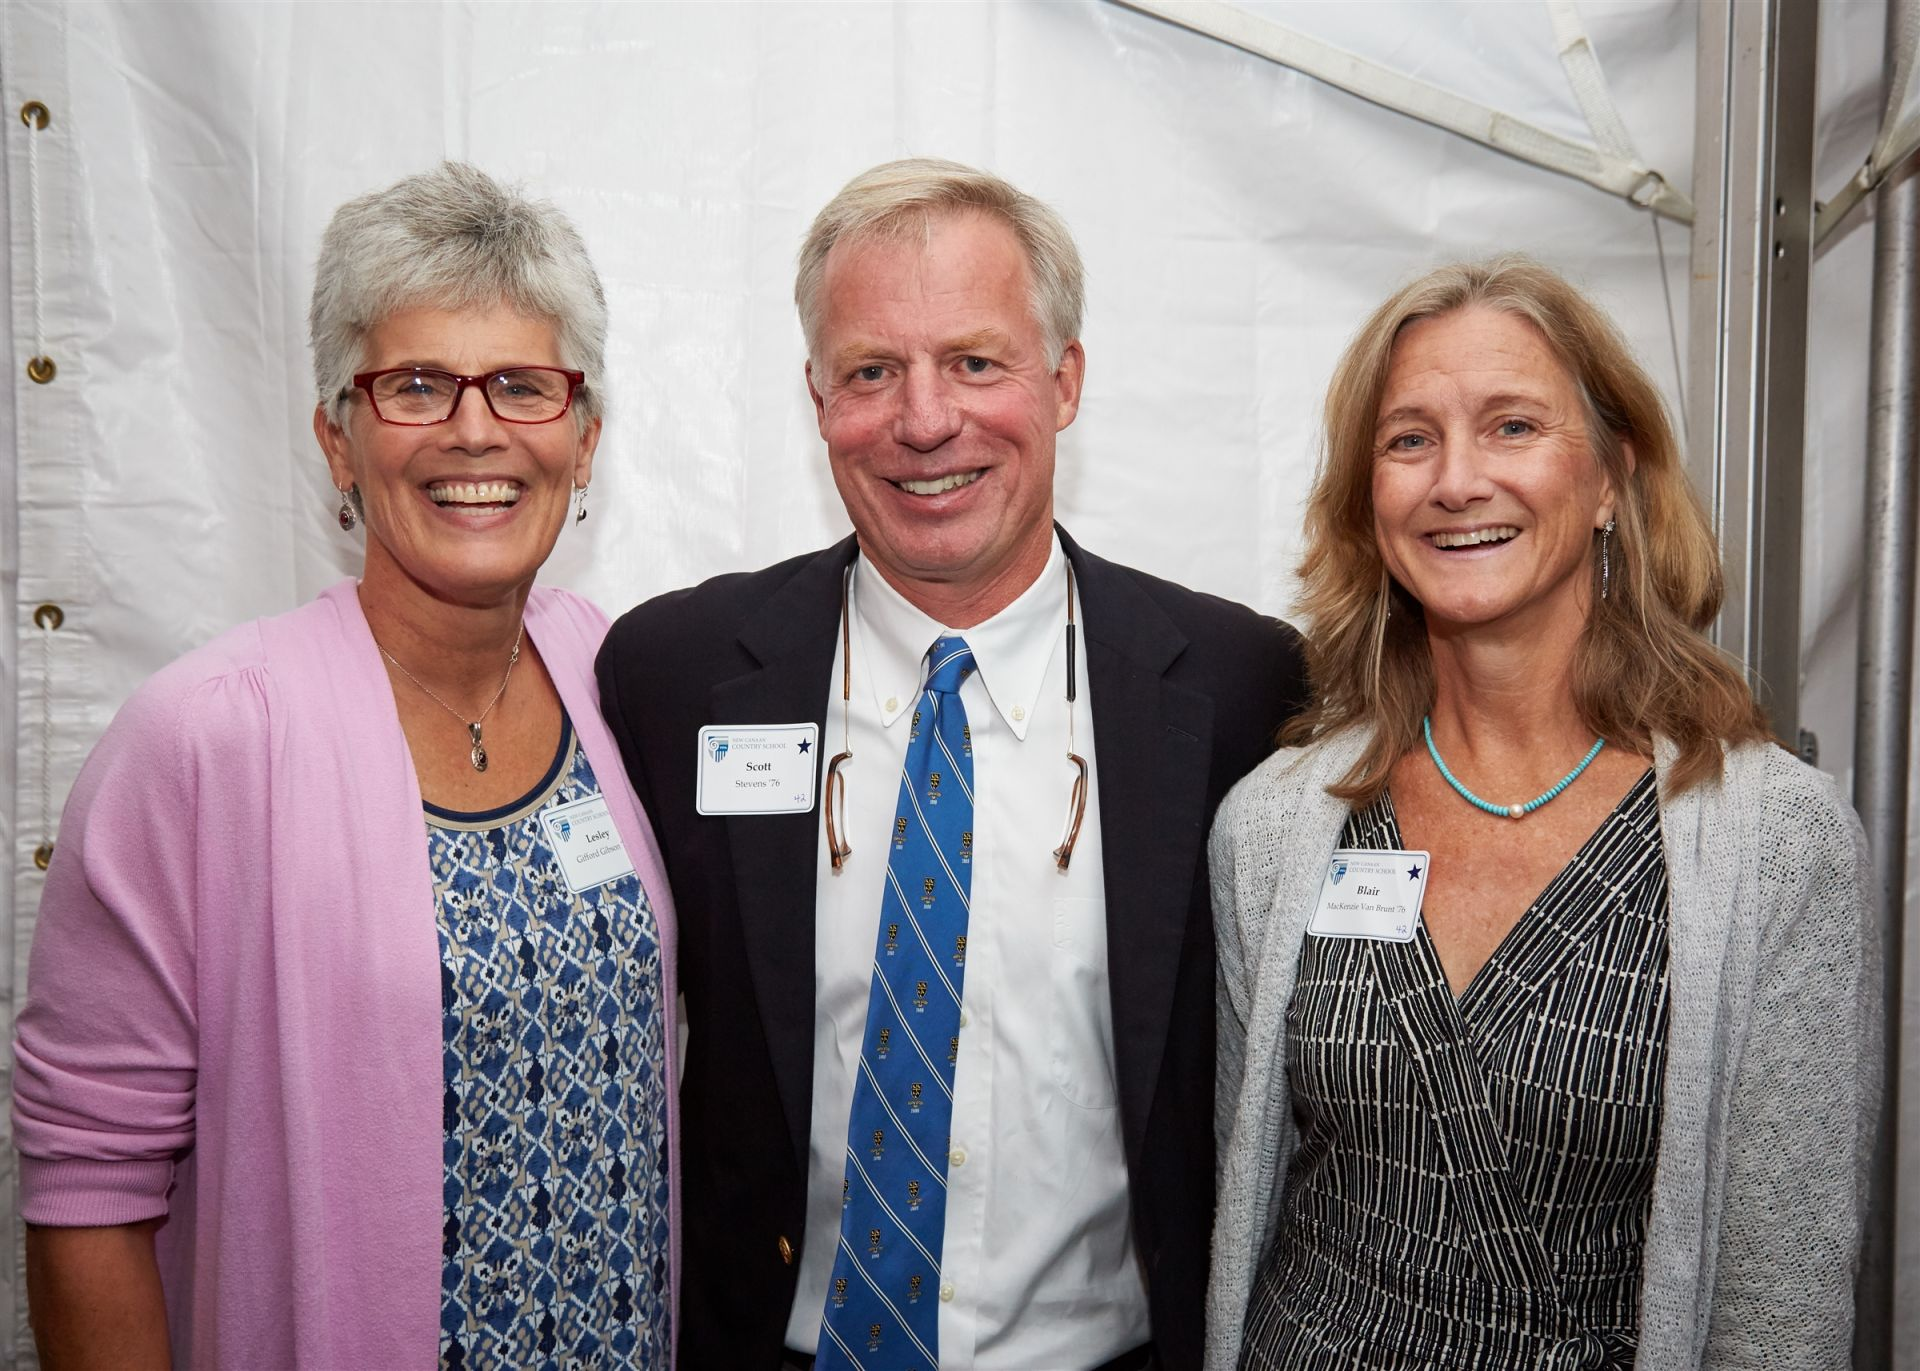 Centennial Celebration Weekend: Lesley Gifford Gibson '76, Scott Stevens '76, Blair MacKenzie Van Brunt '76